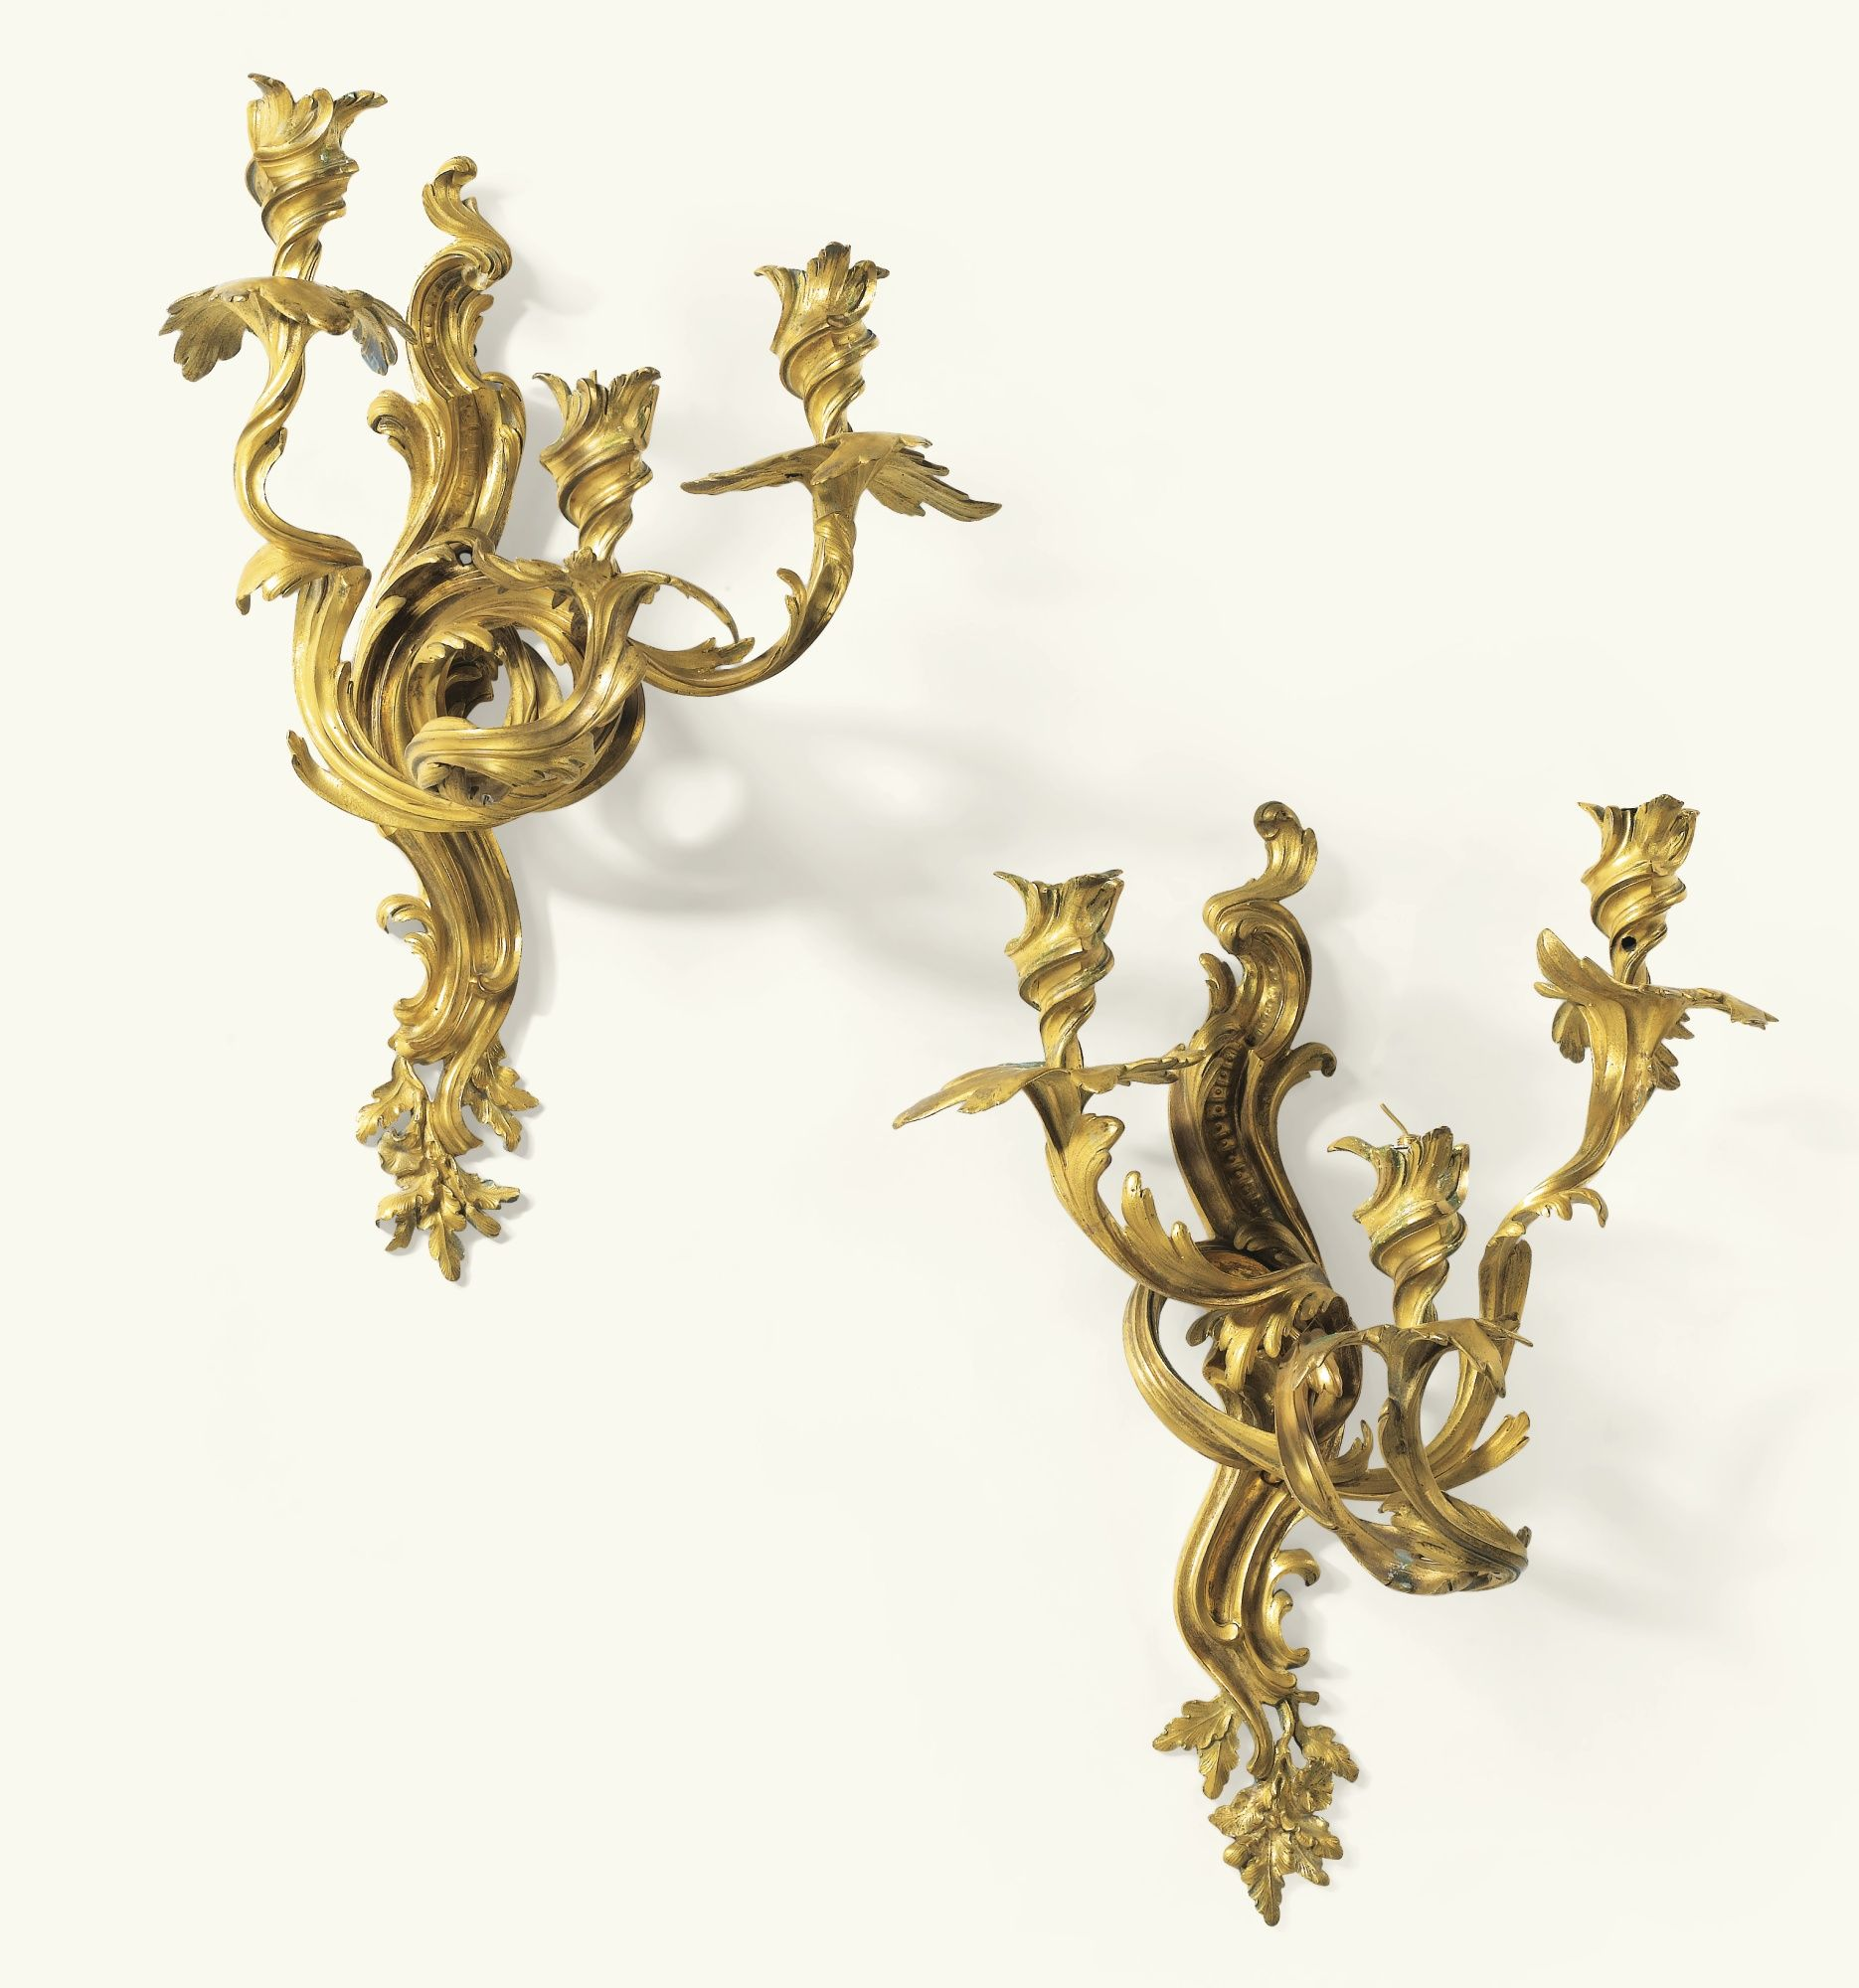 date unspecified Louis XV A PAIR OF GILTBRONZE WALL